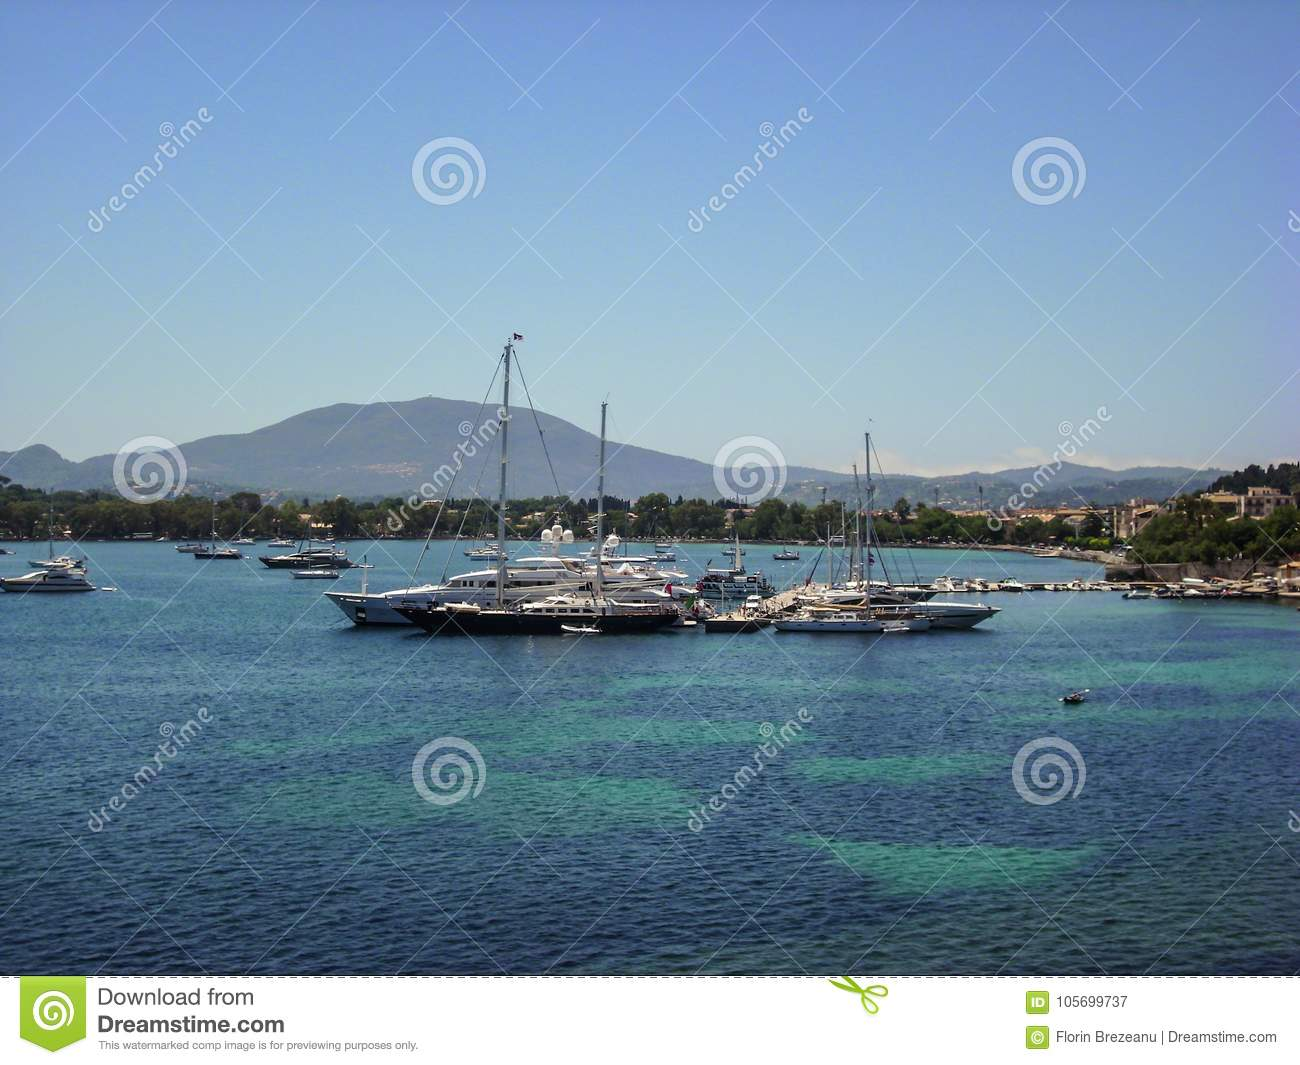 Small boats and yachts in the ionian sea with green vegetation. The beautiful island of Corfu, Greece.